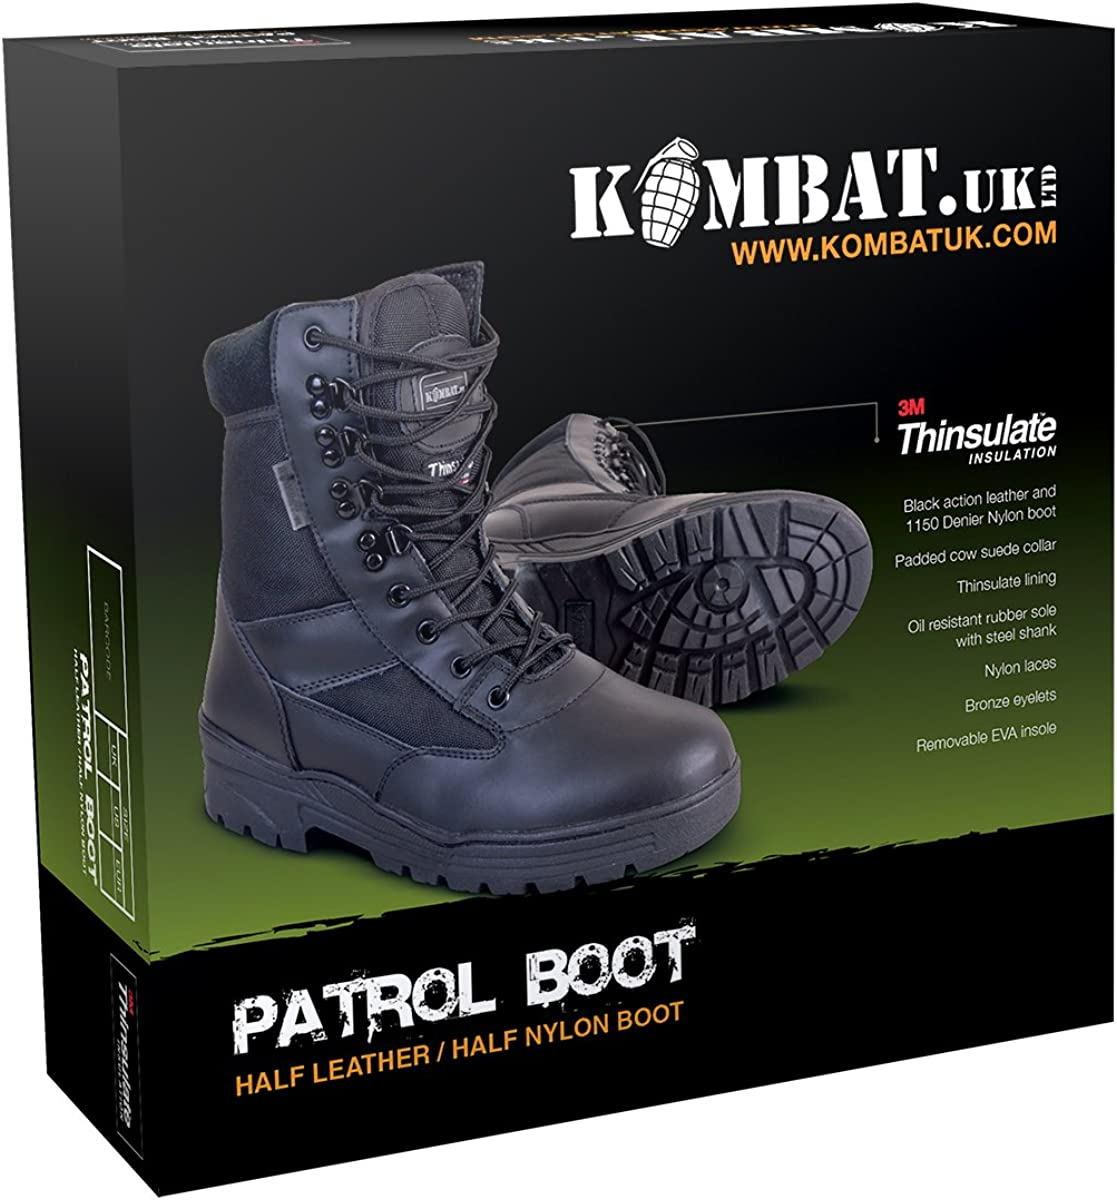 Kombat UK Men's Half Leather Half Nylon Patrol Boots